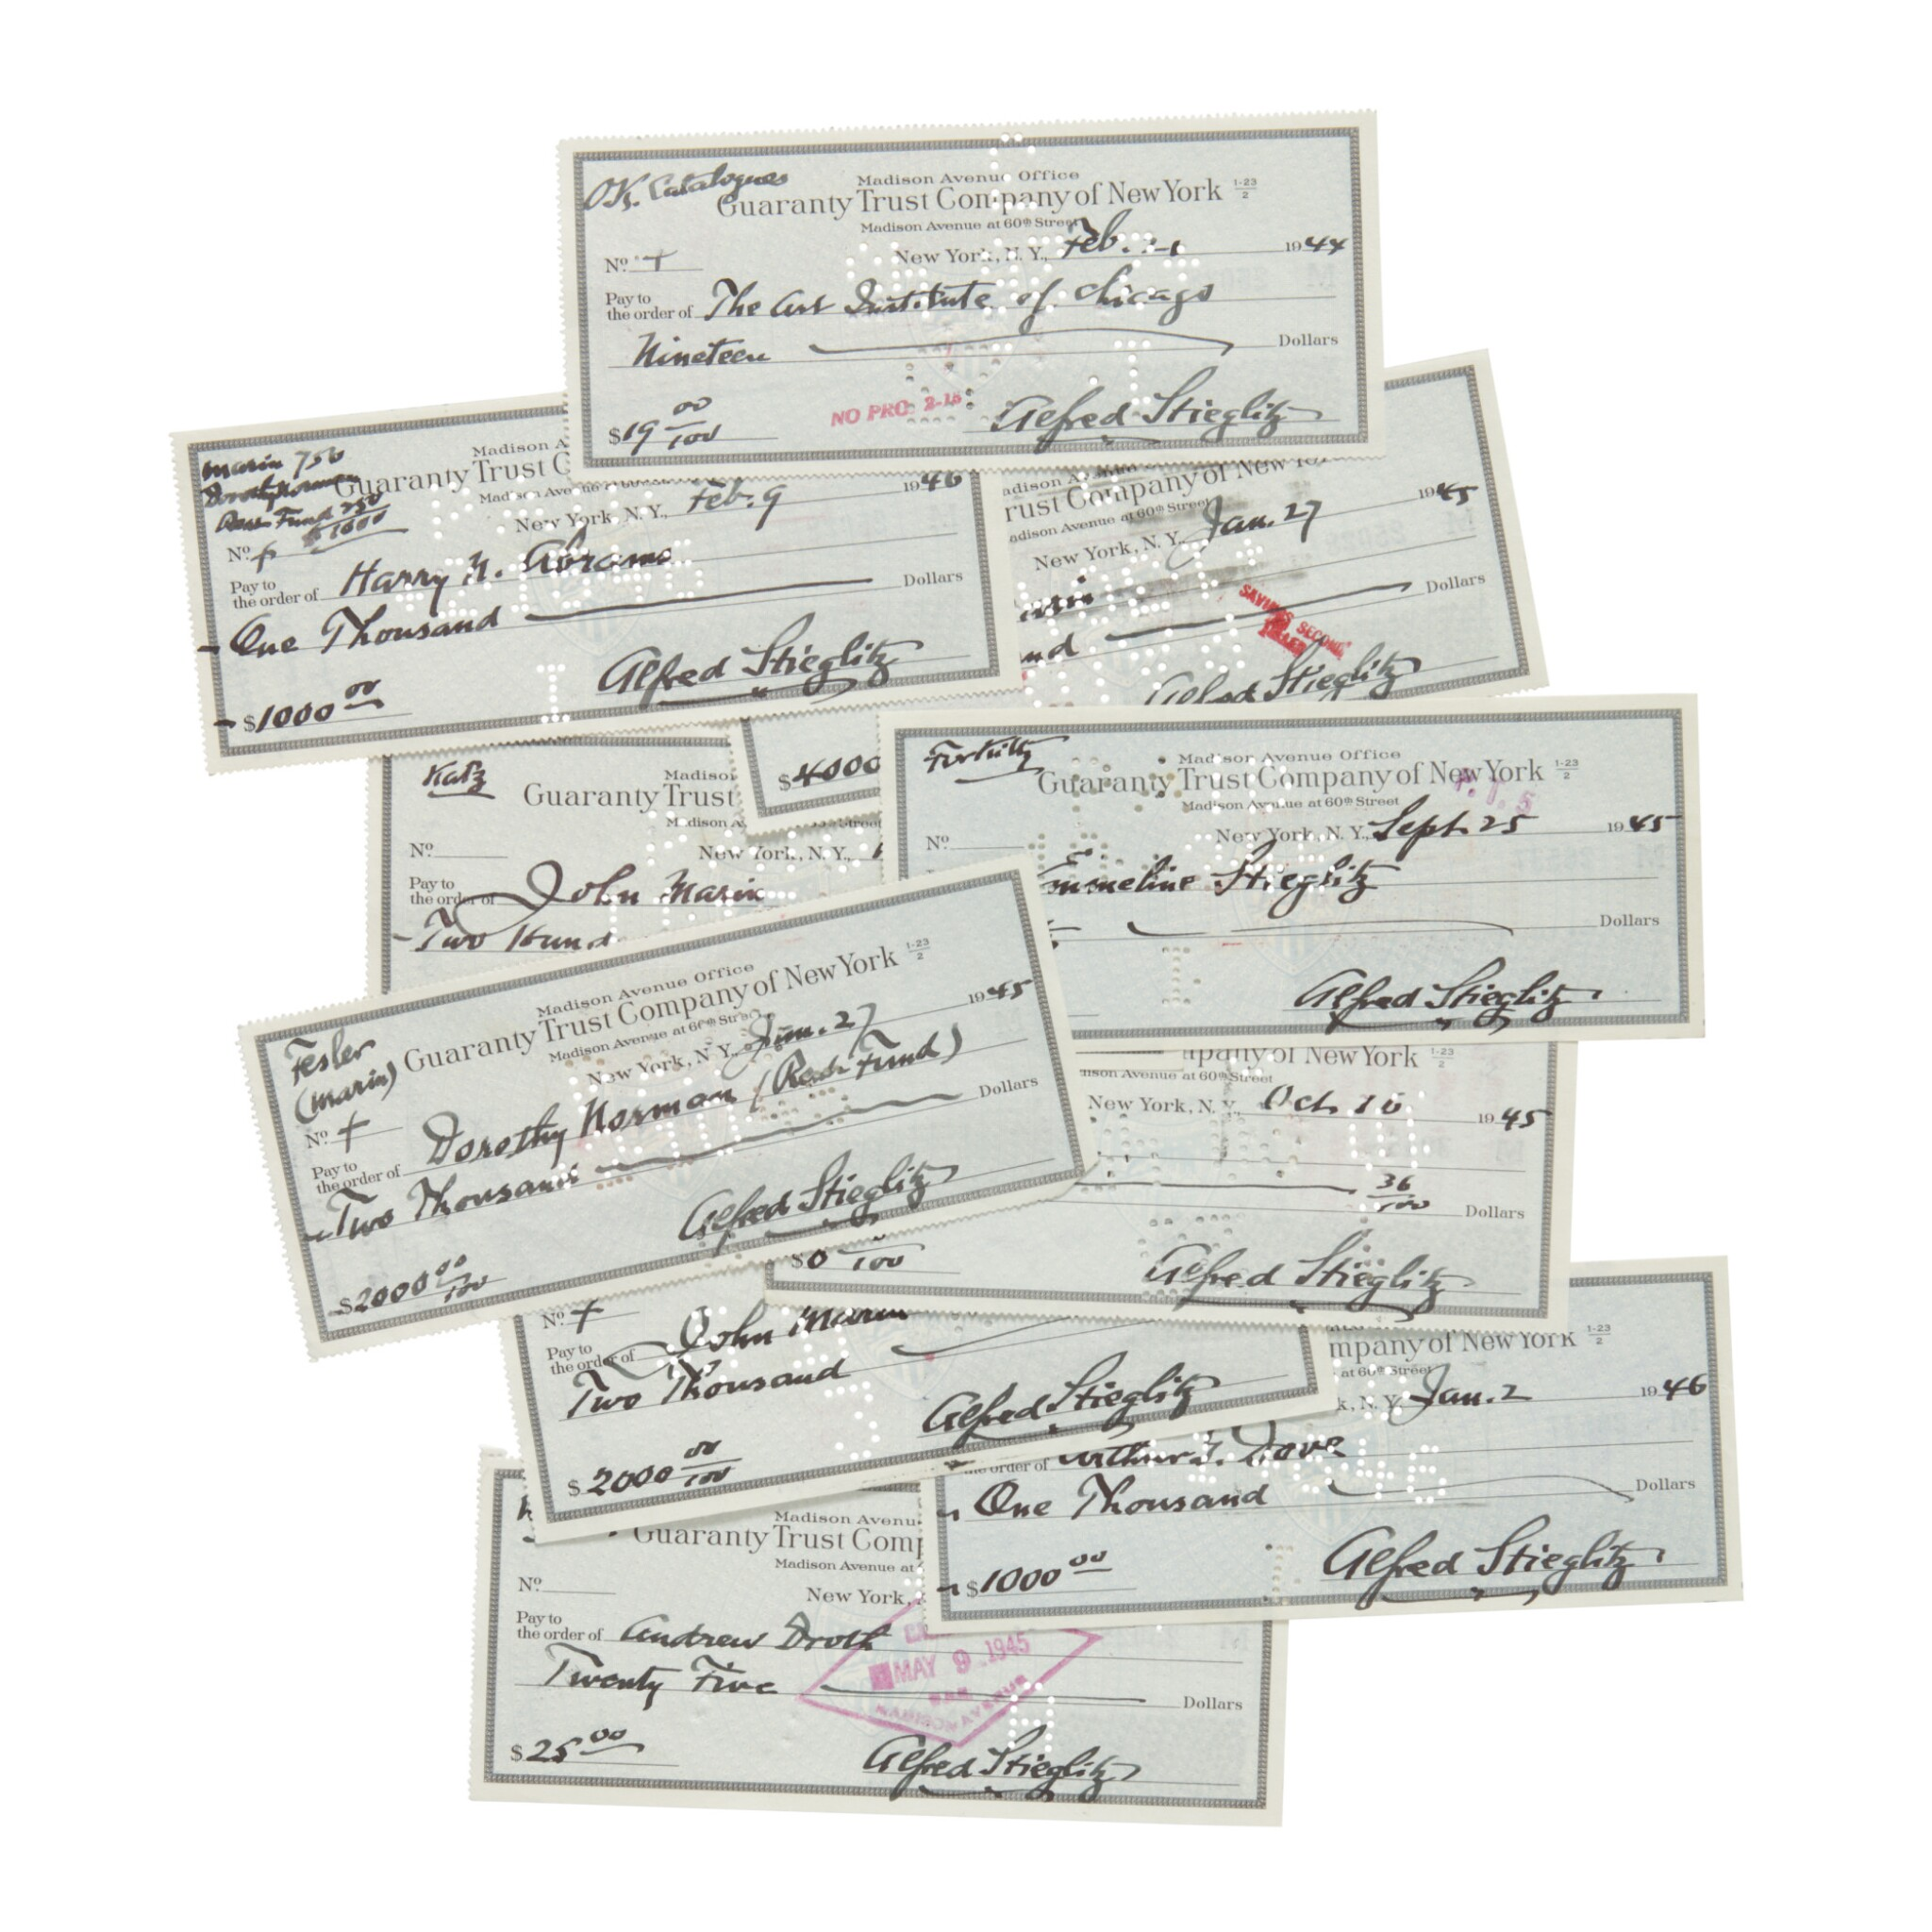 ALFRED STIEGLITZ | 10 CHECKS, EACH SIGNED BY ALFRED STIEGLITZ AND ENDORSED BY THE VARYING RECIPIENTS, NEW YORK, 1944–1946